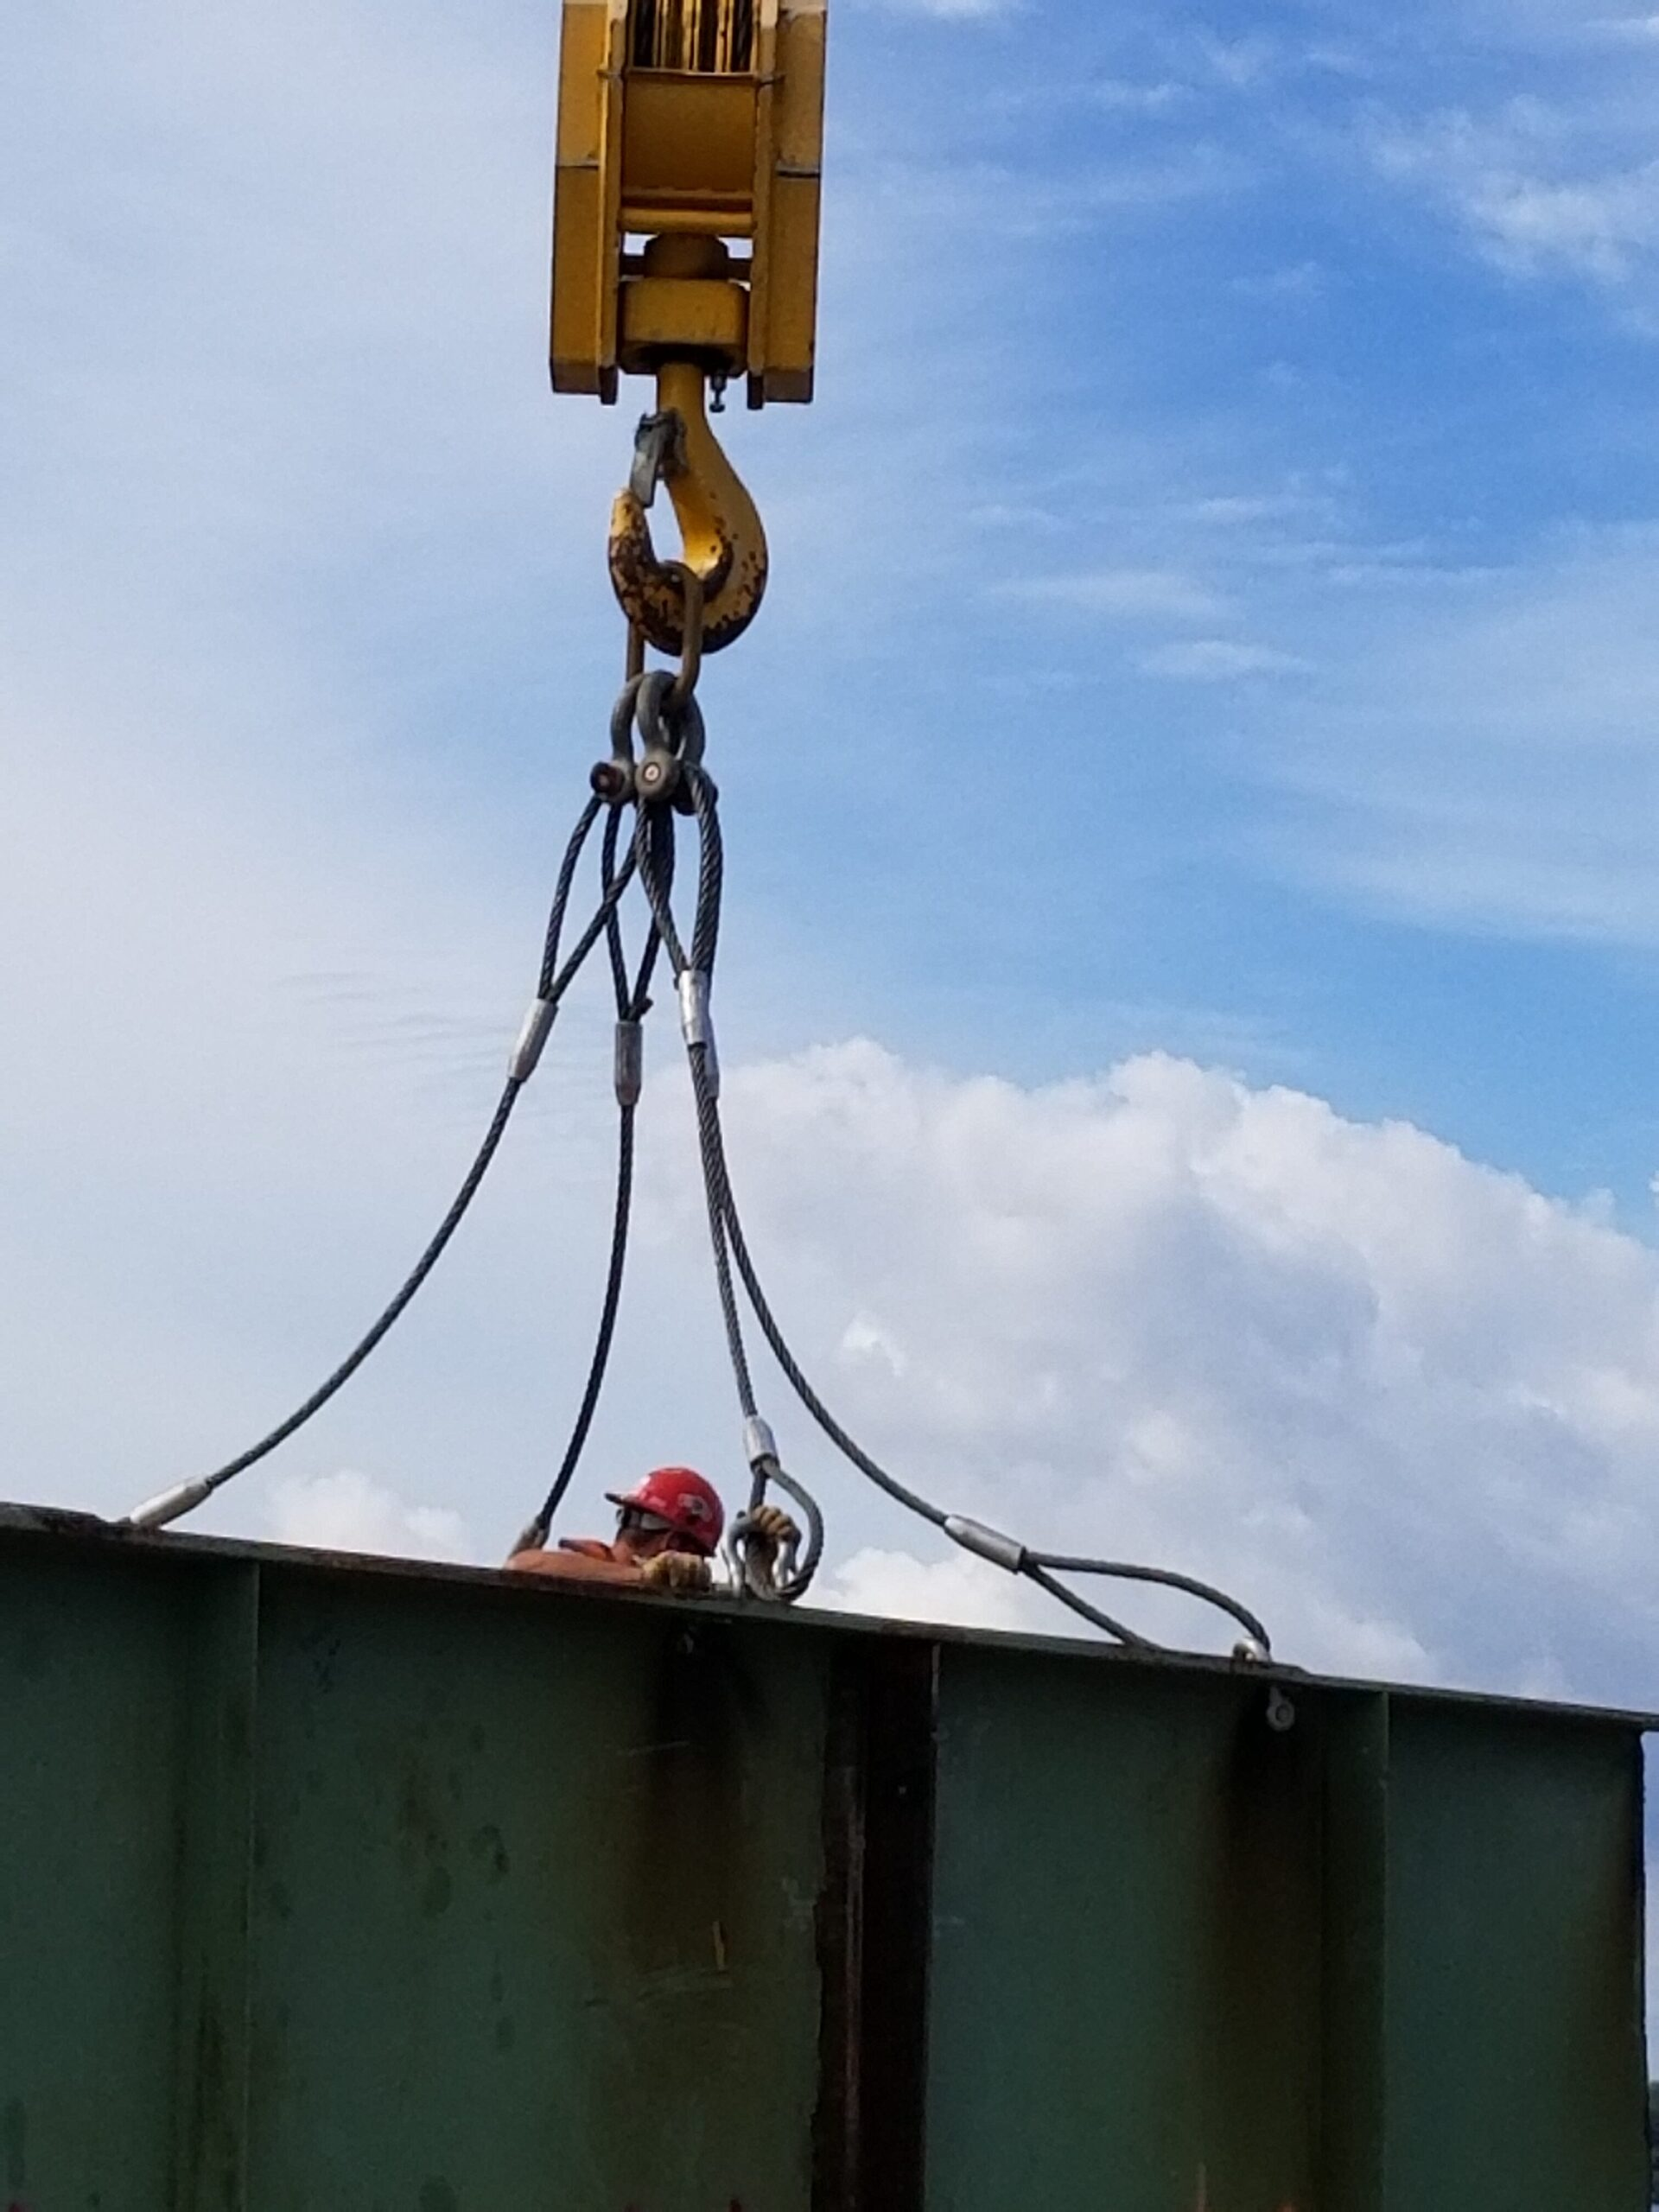 Removing the crane cables from the removed girder